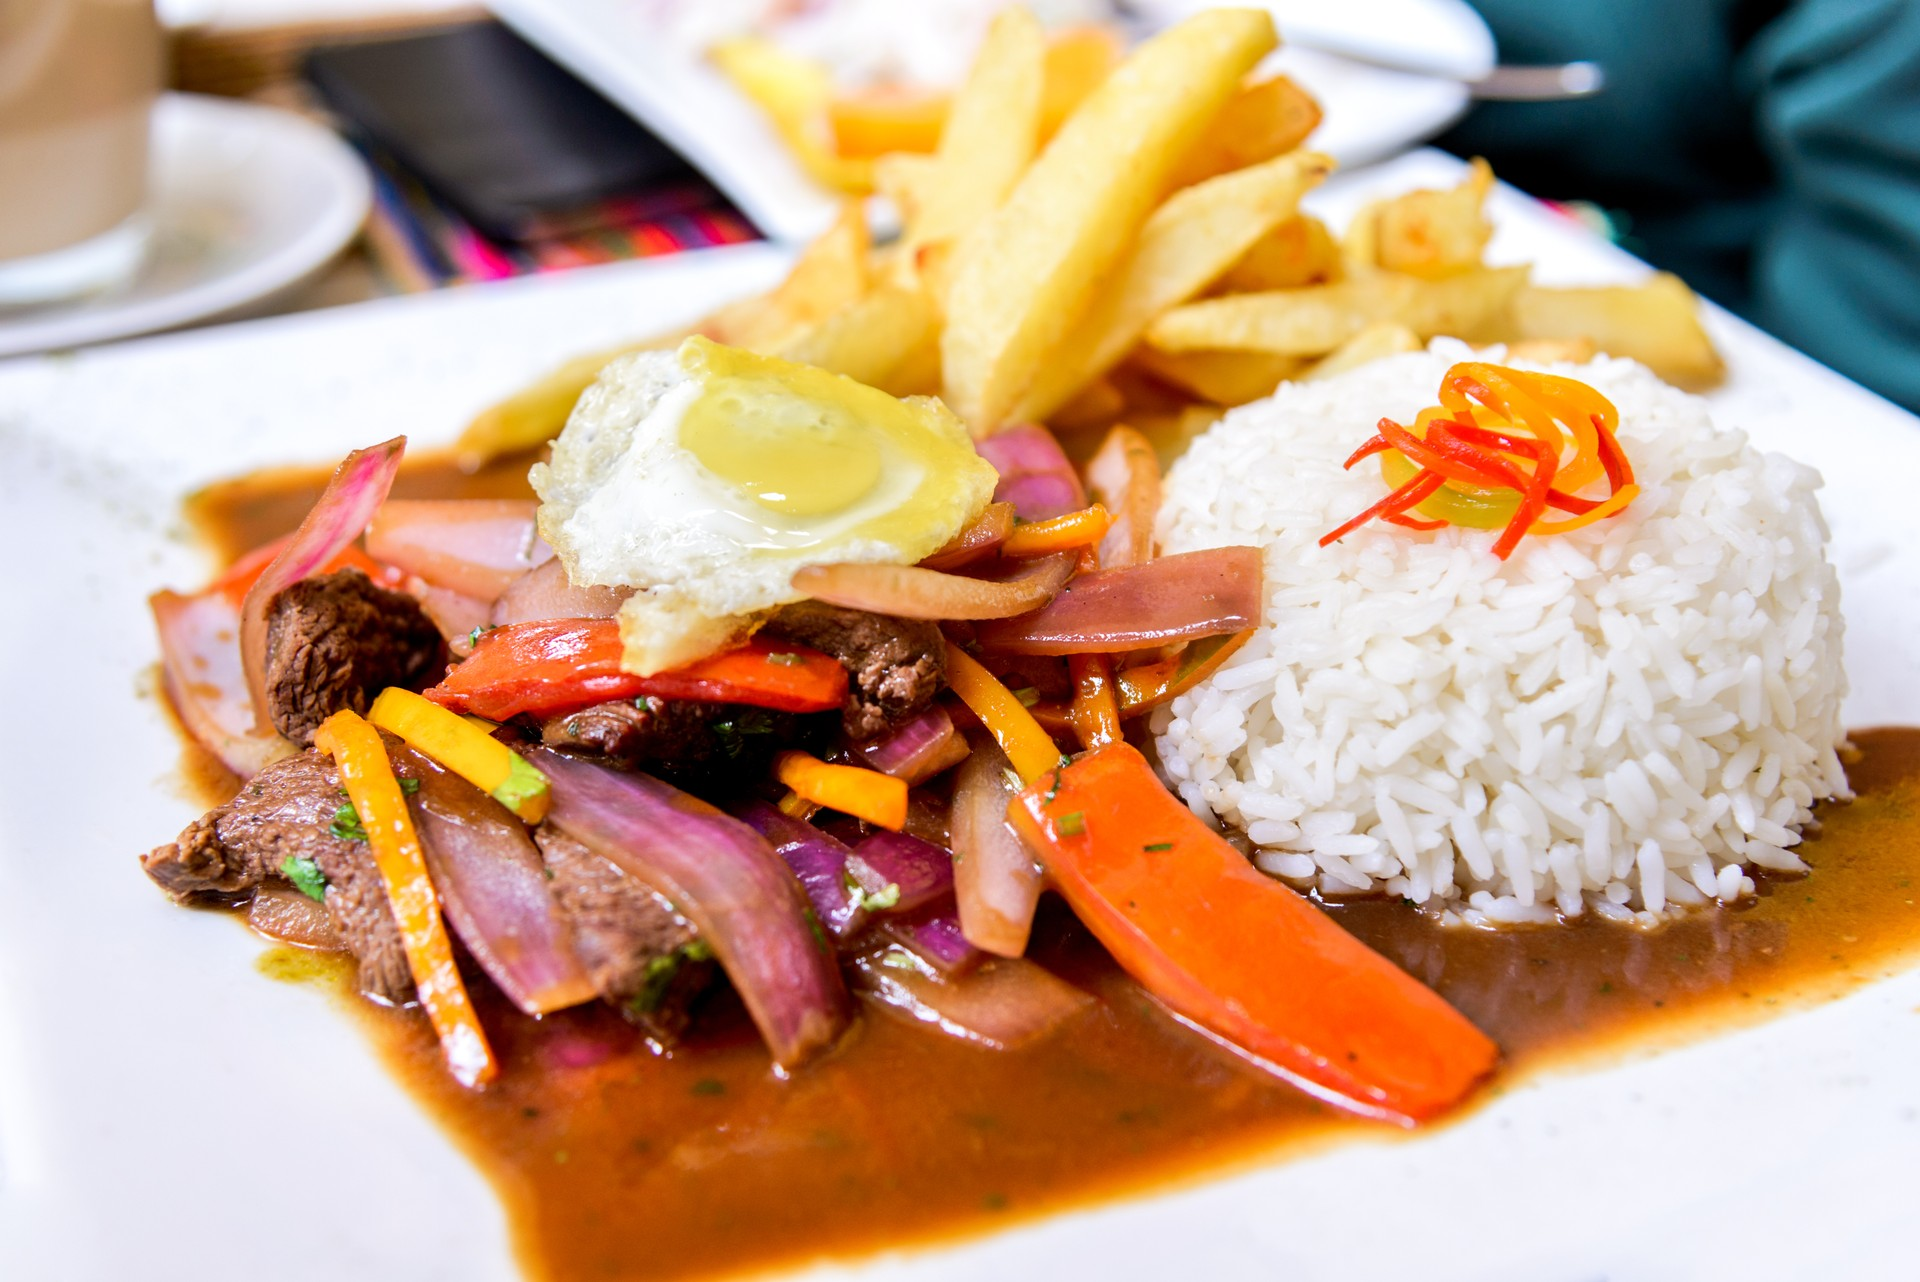 A plate of lomo saltado which is a typical dish of Chifa cuisine in Peru